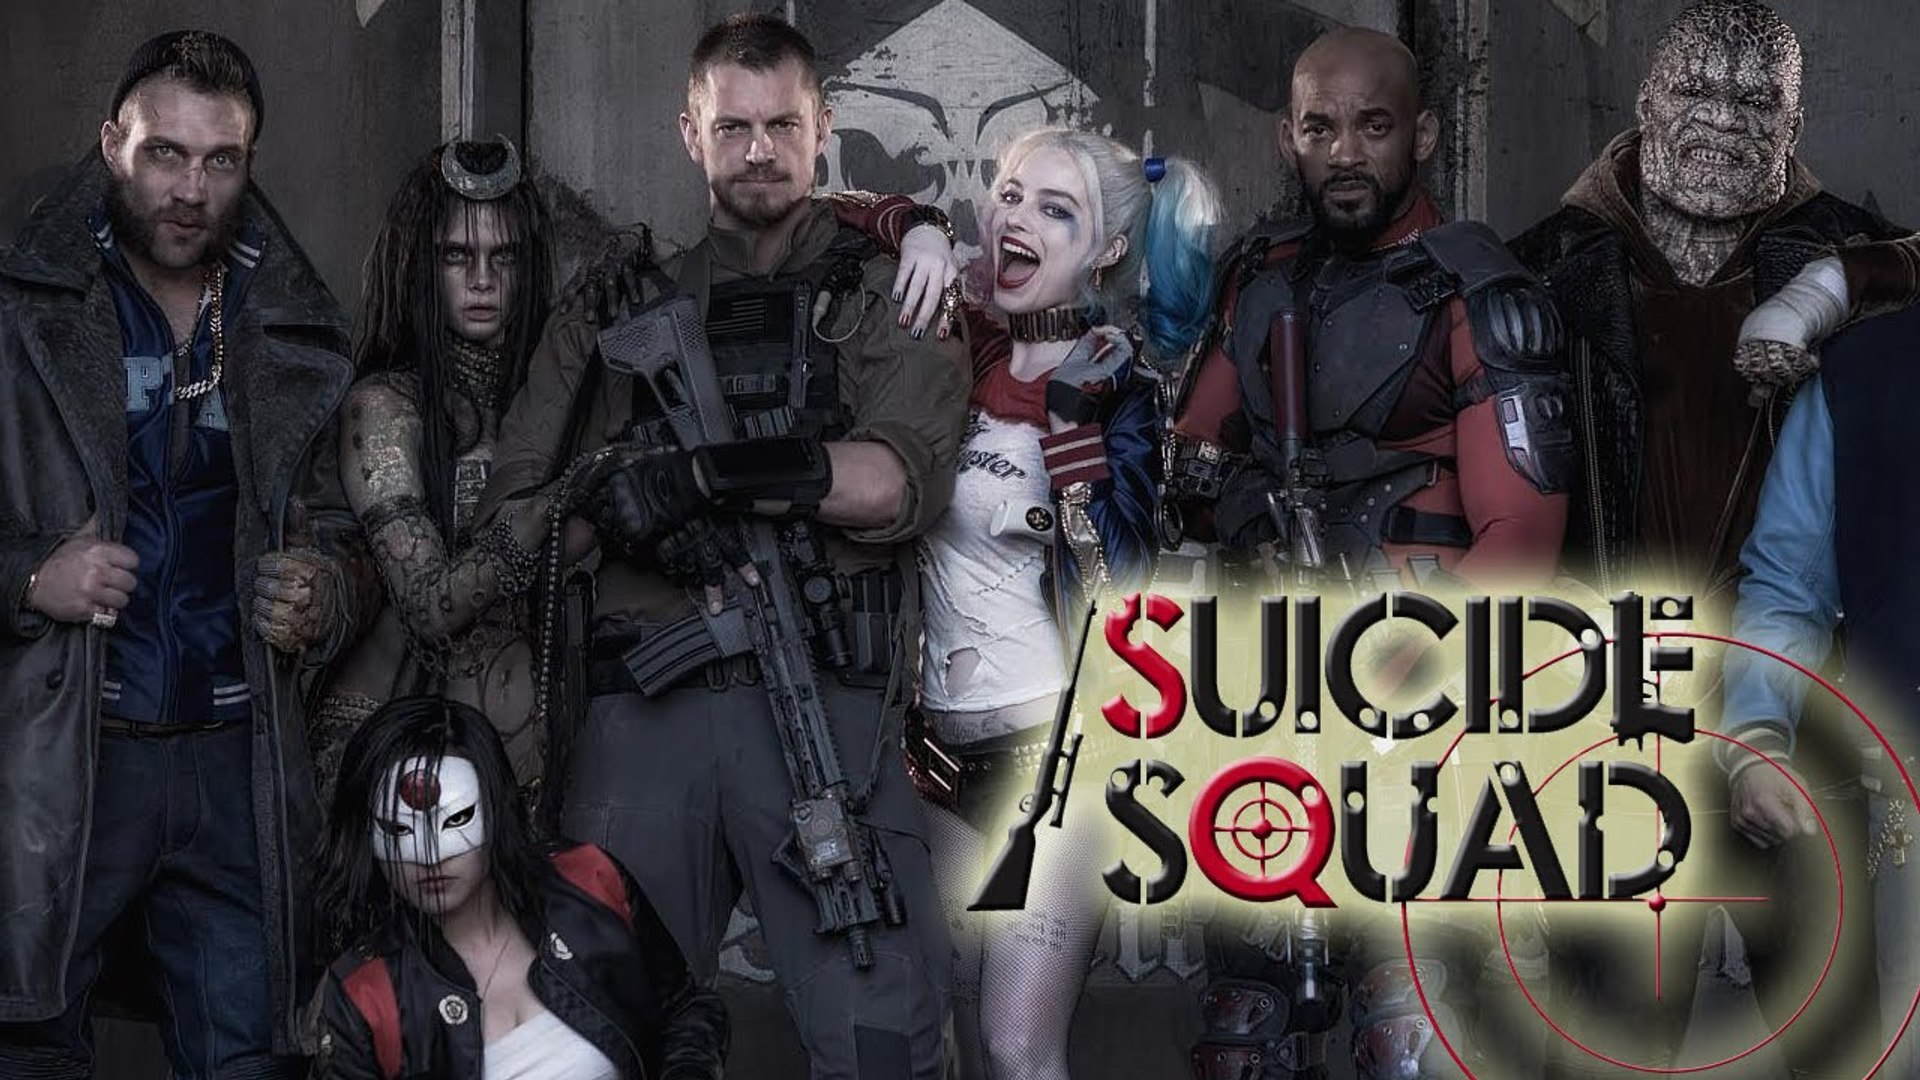 Suicide Squad Official Movie Full video 2016 - Will Smith, Margot Robbie  Movie 2016 - video Dailymotion